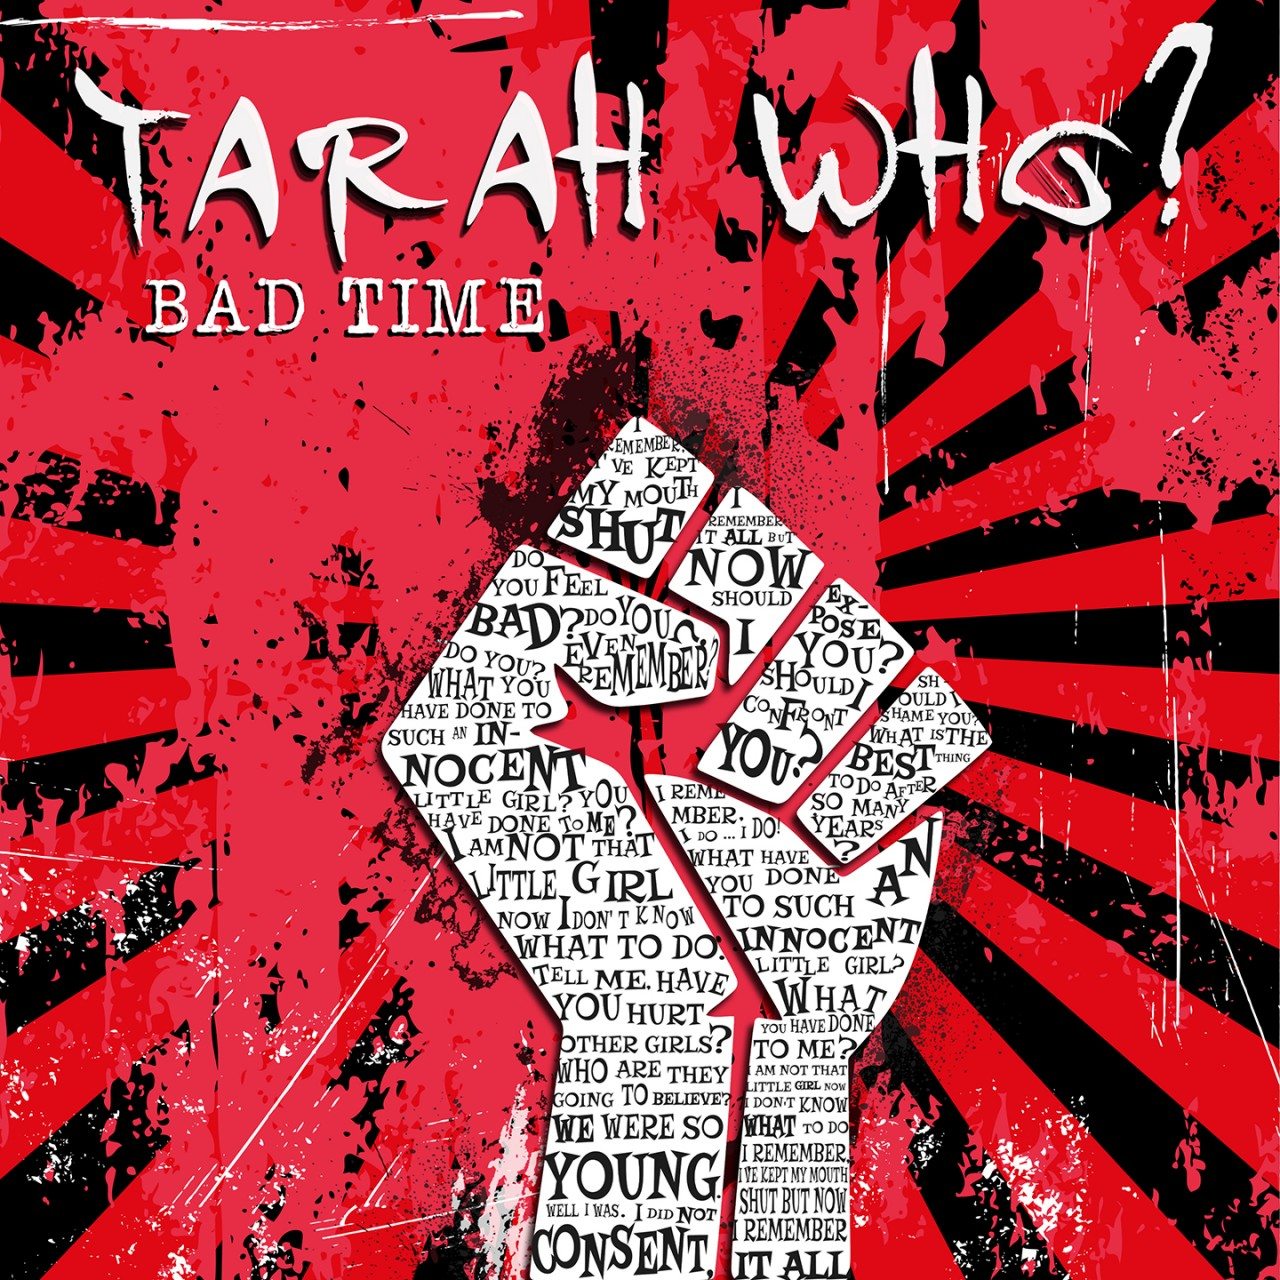 Cover_Bad-time_X1440